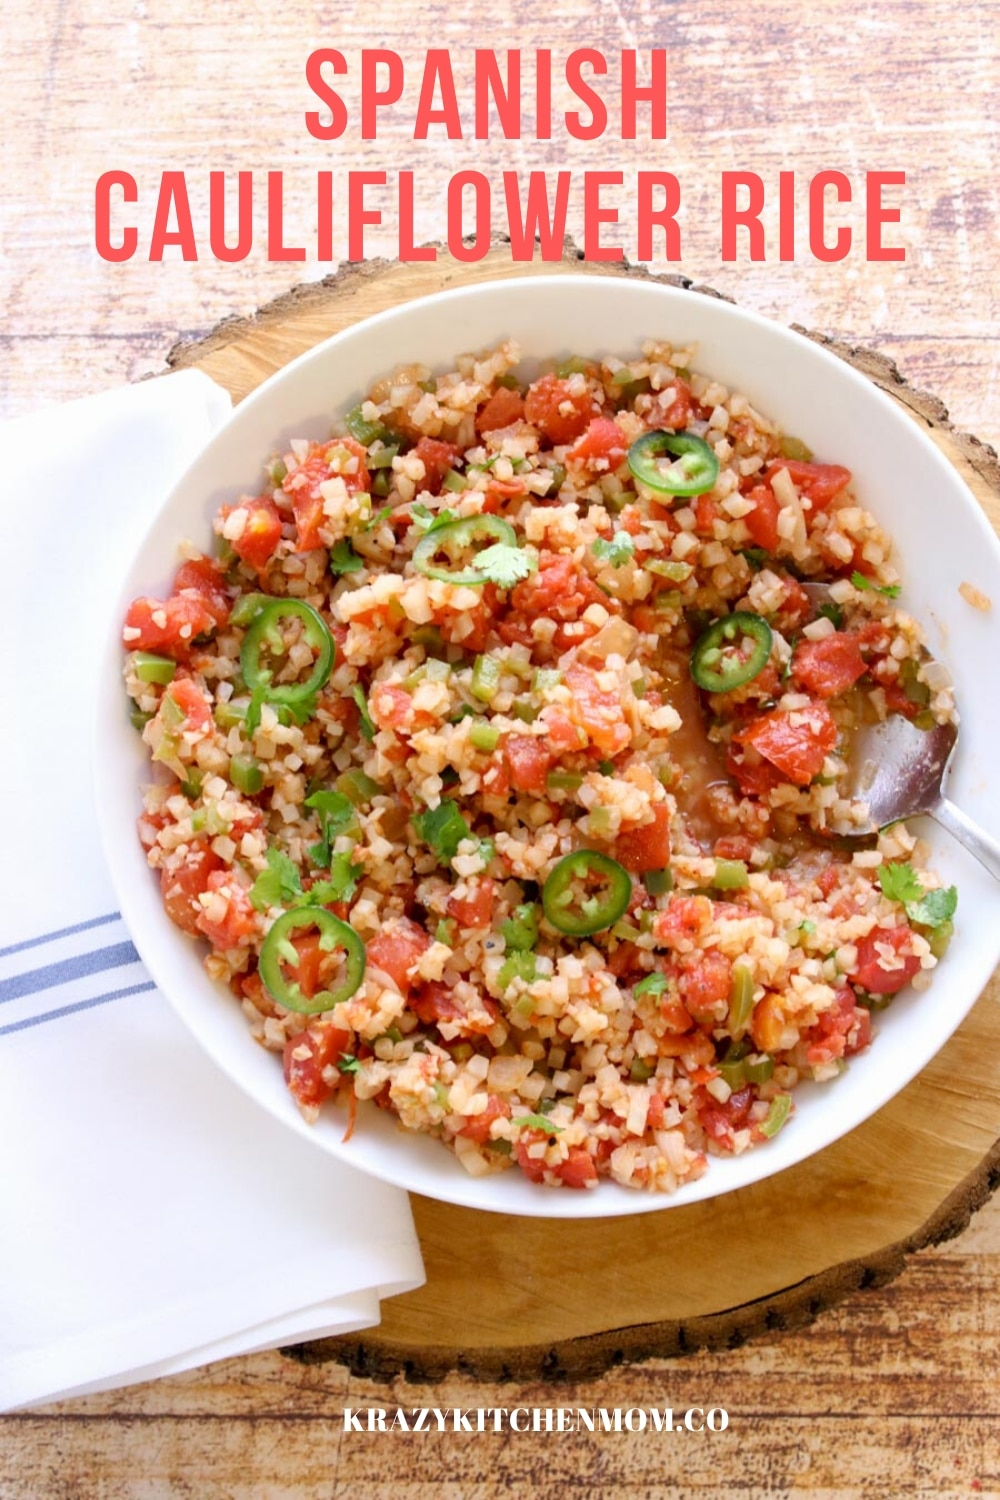 THIS LOW CALORIE RECIPES HAS BEEN BOLD FLAVORS AND IS READY IN 10 MINUTES.  via @krazykitchenmom